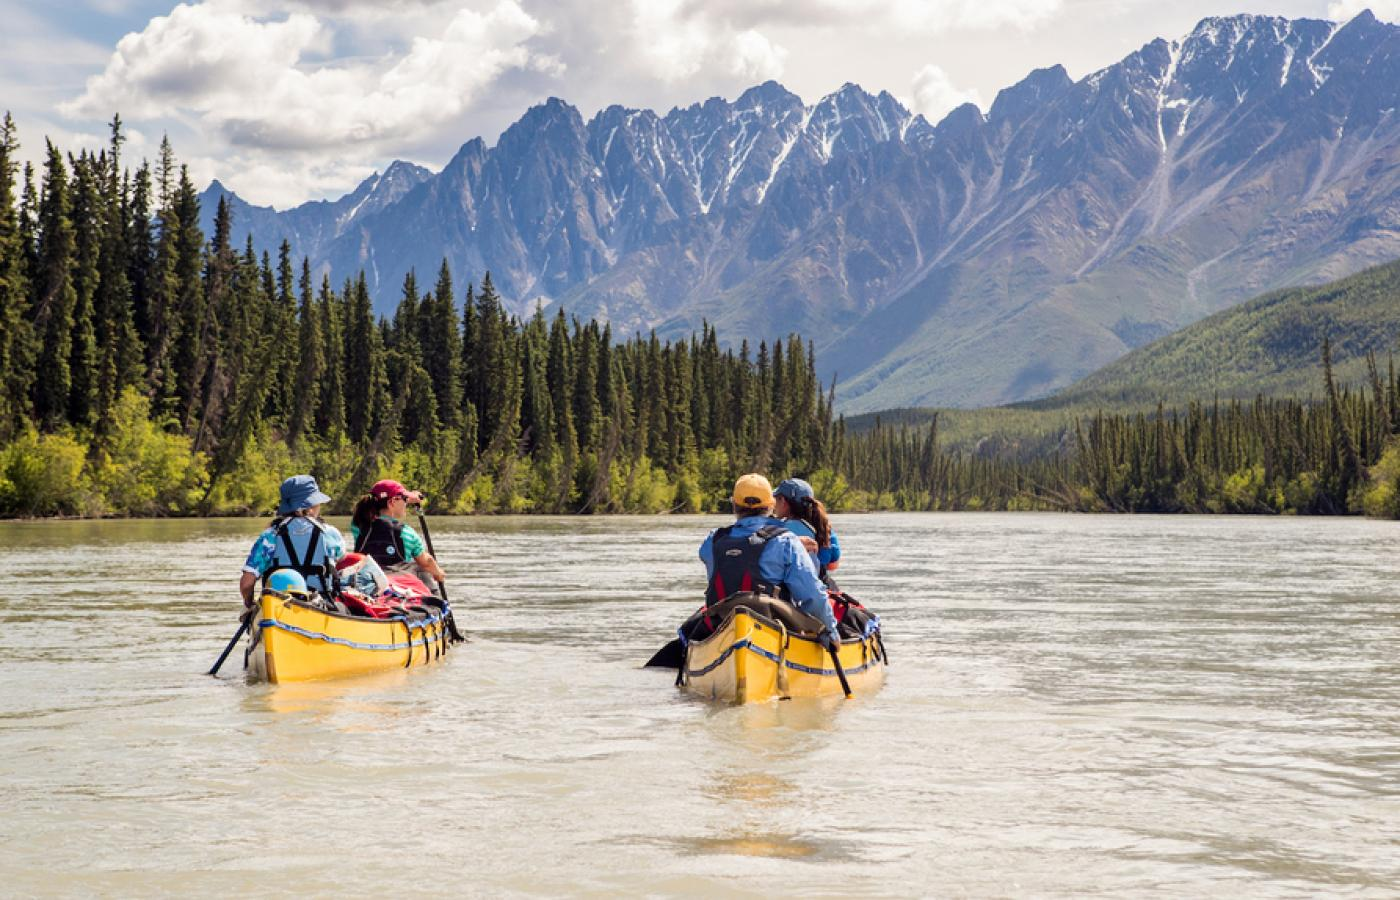 The Upper Nahanni River is a scenic tour through Nahanni National Park Reserve in Canada's Northwest Territories